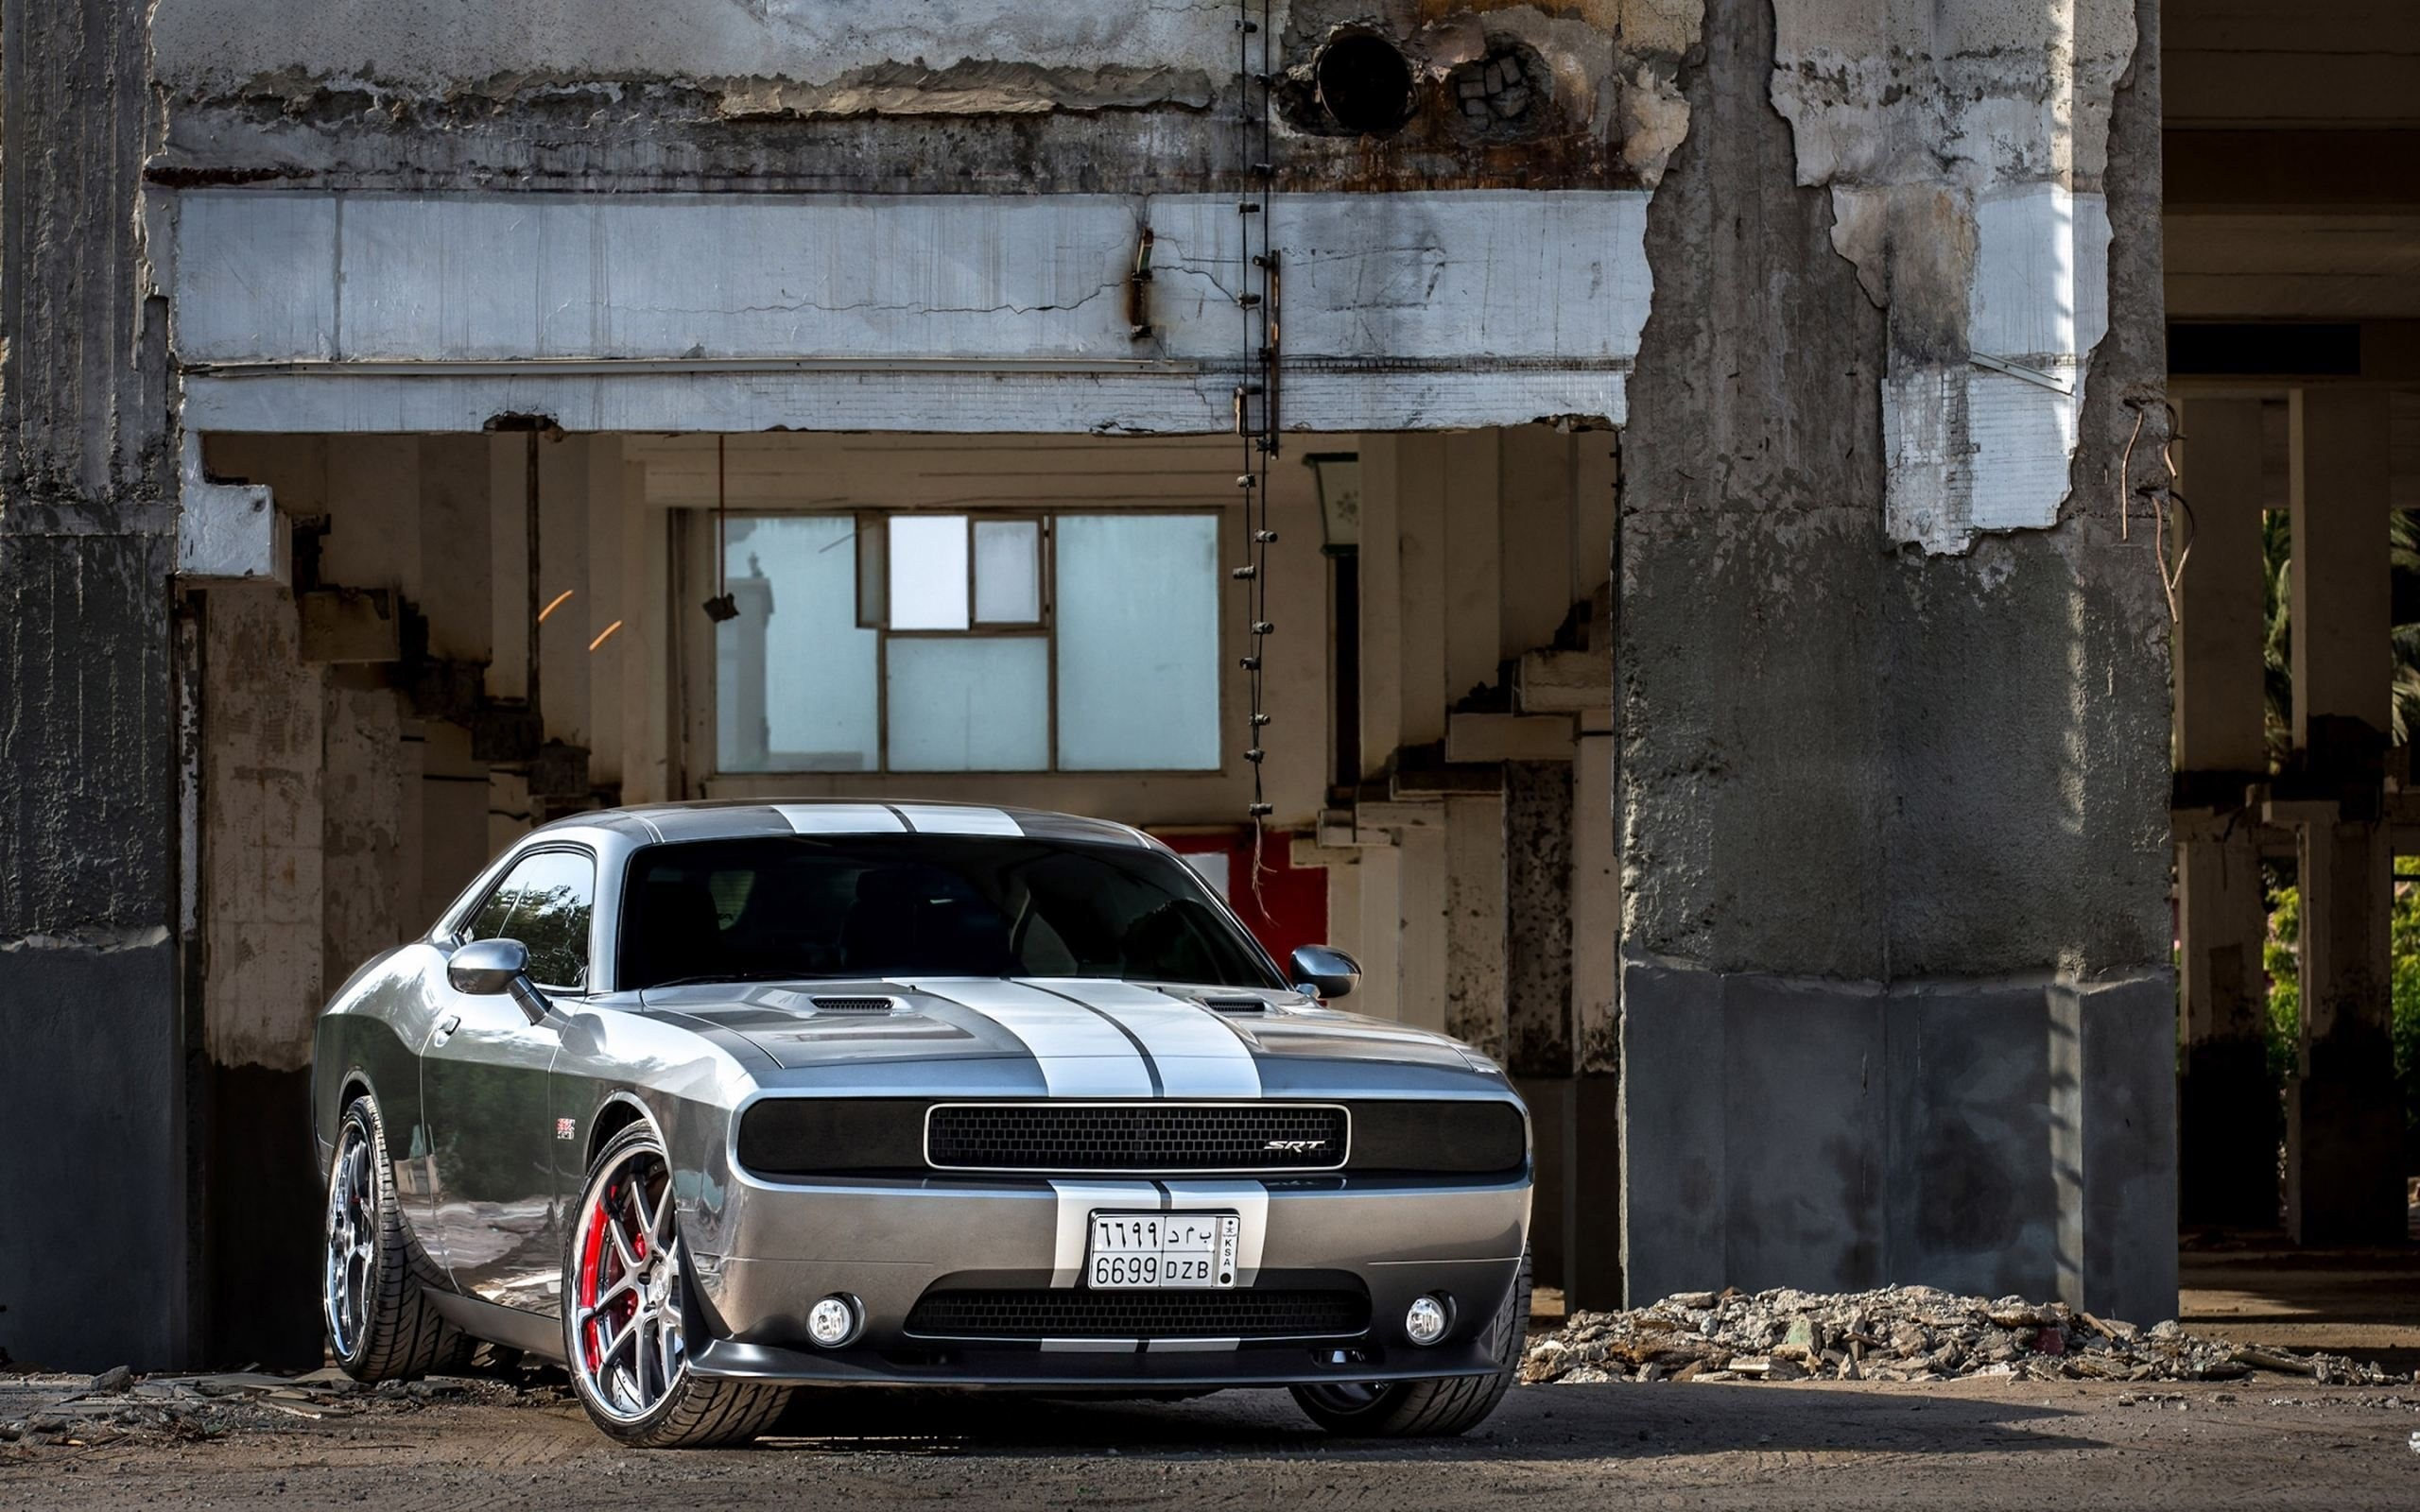 Dodge Challenger SRT8 Warehouse Photo